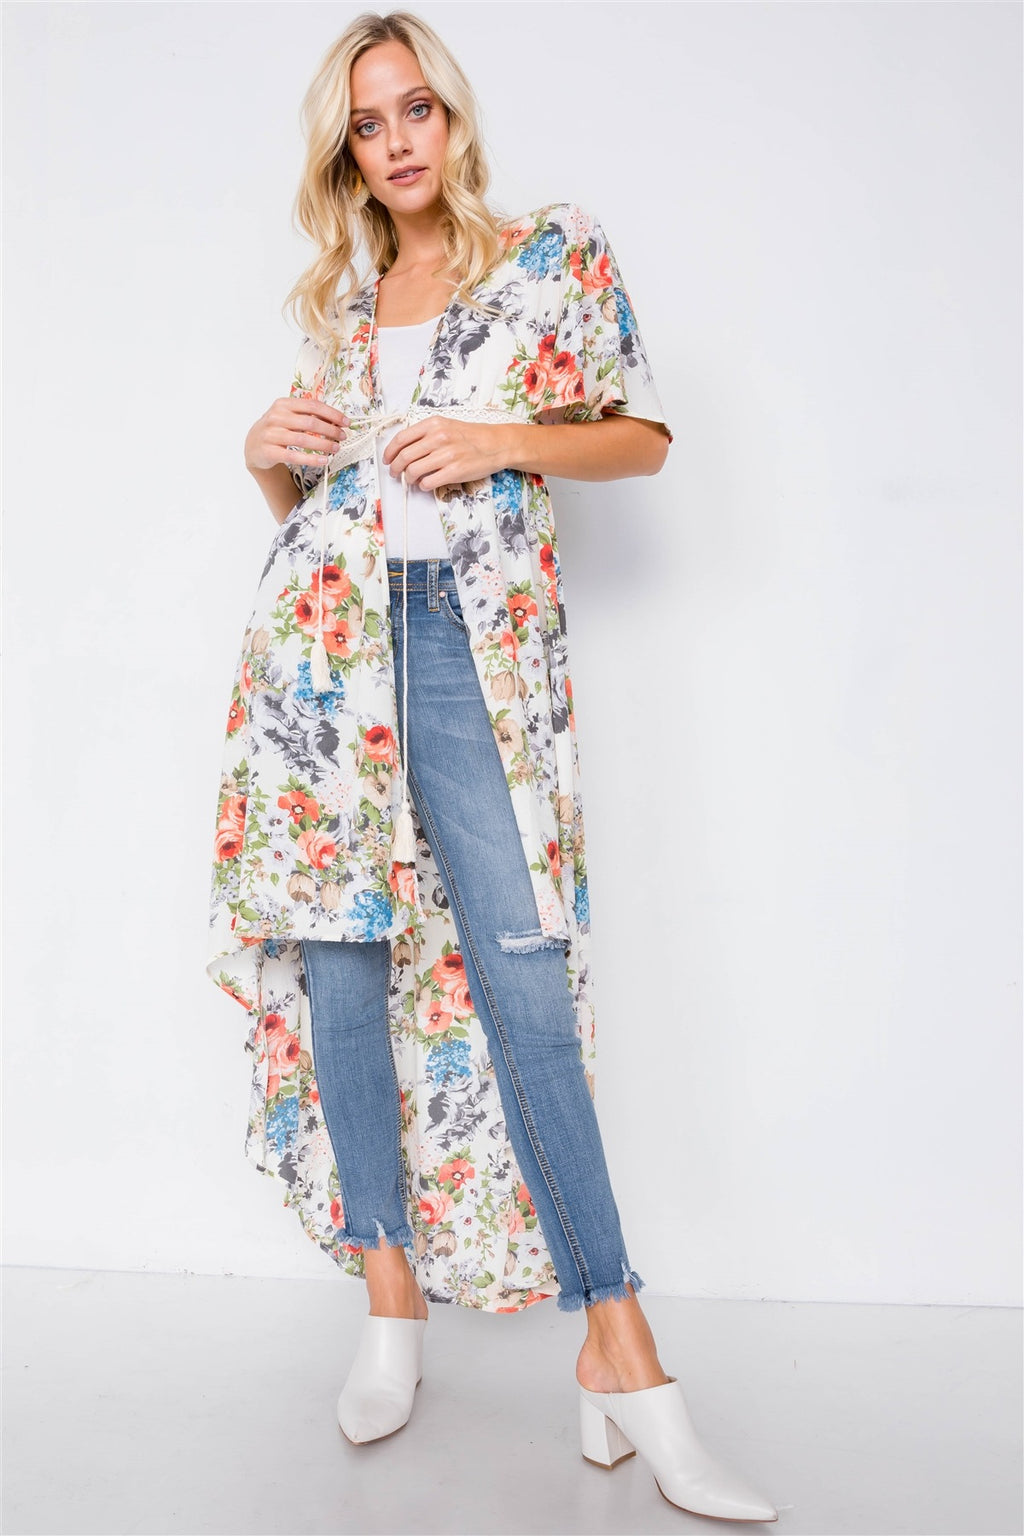 FLORAL KIMONO COVER-UP - Radiant